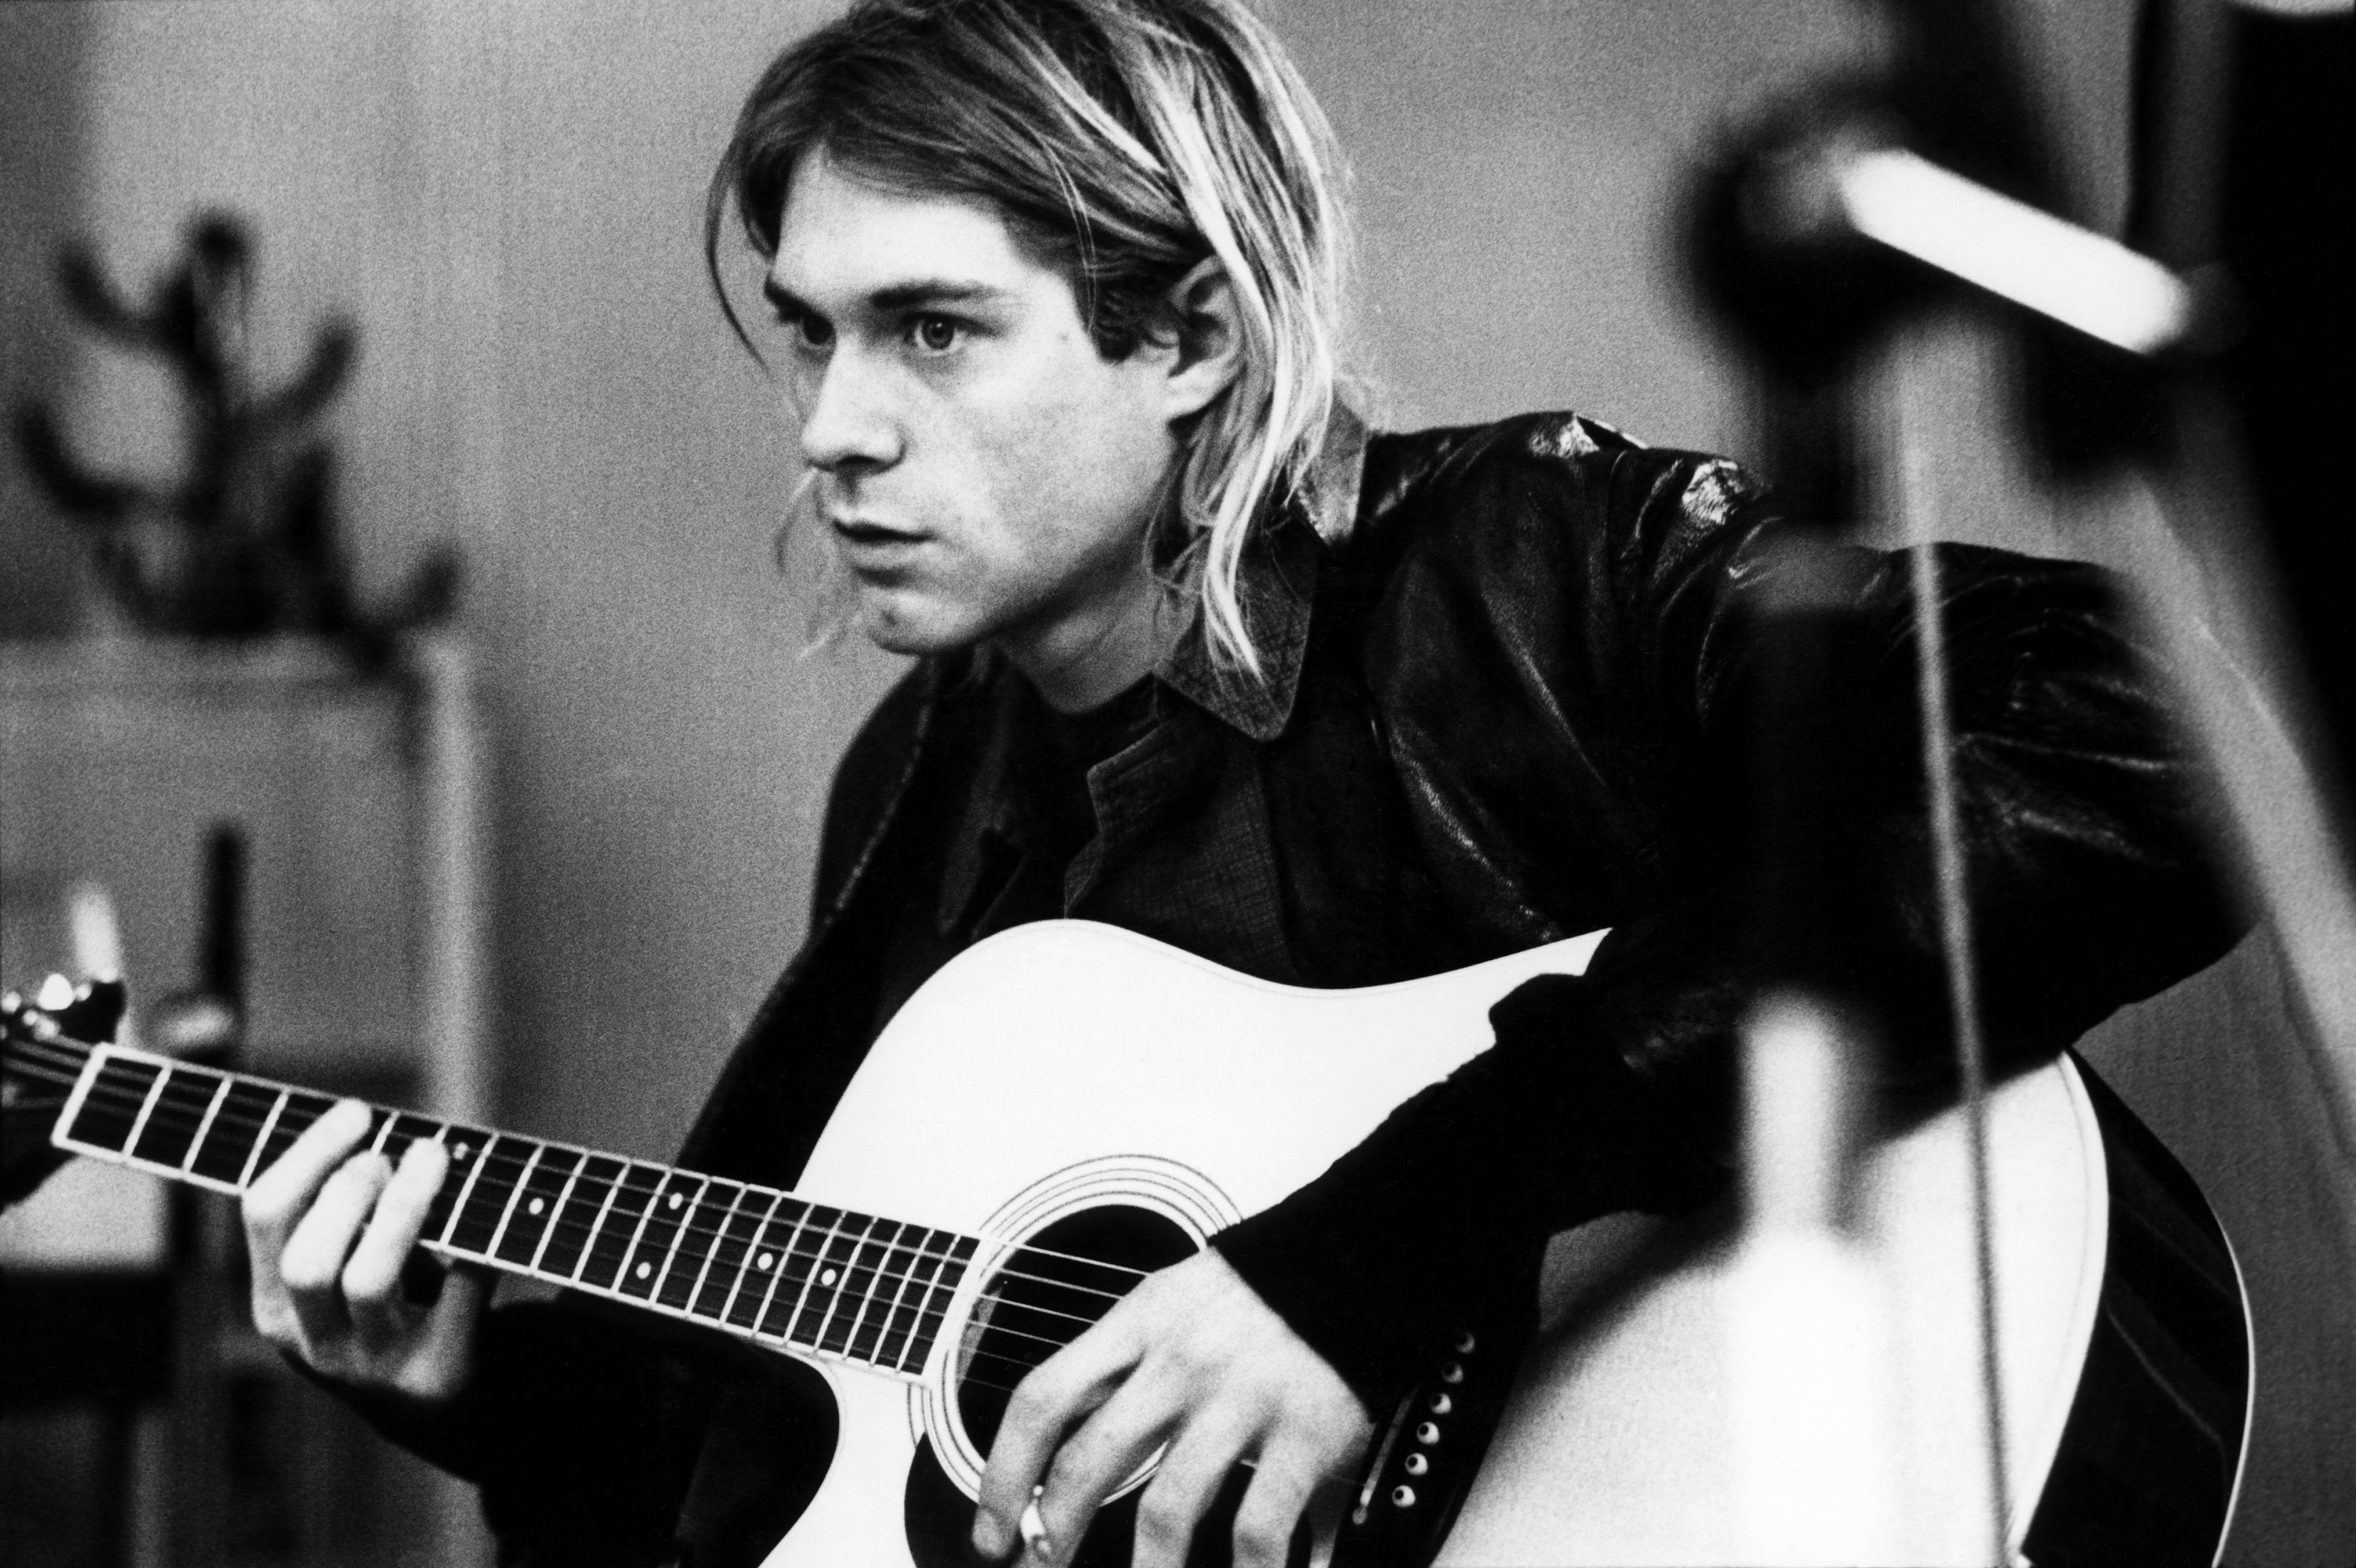 Unreleased Kurt Cobain Song to Appear on 'Montage of Heck' Soundtrack